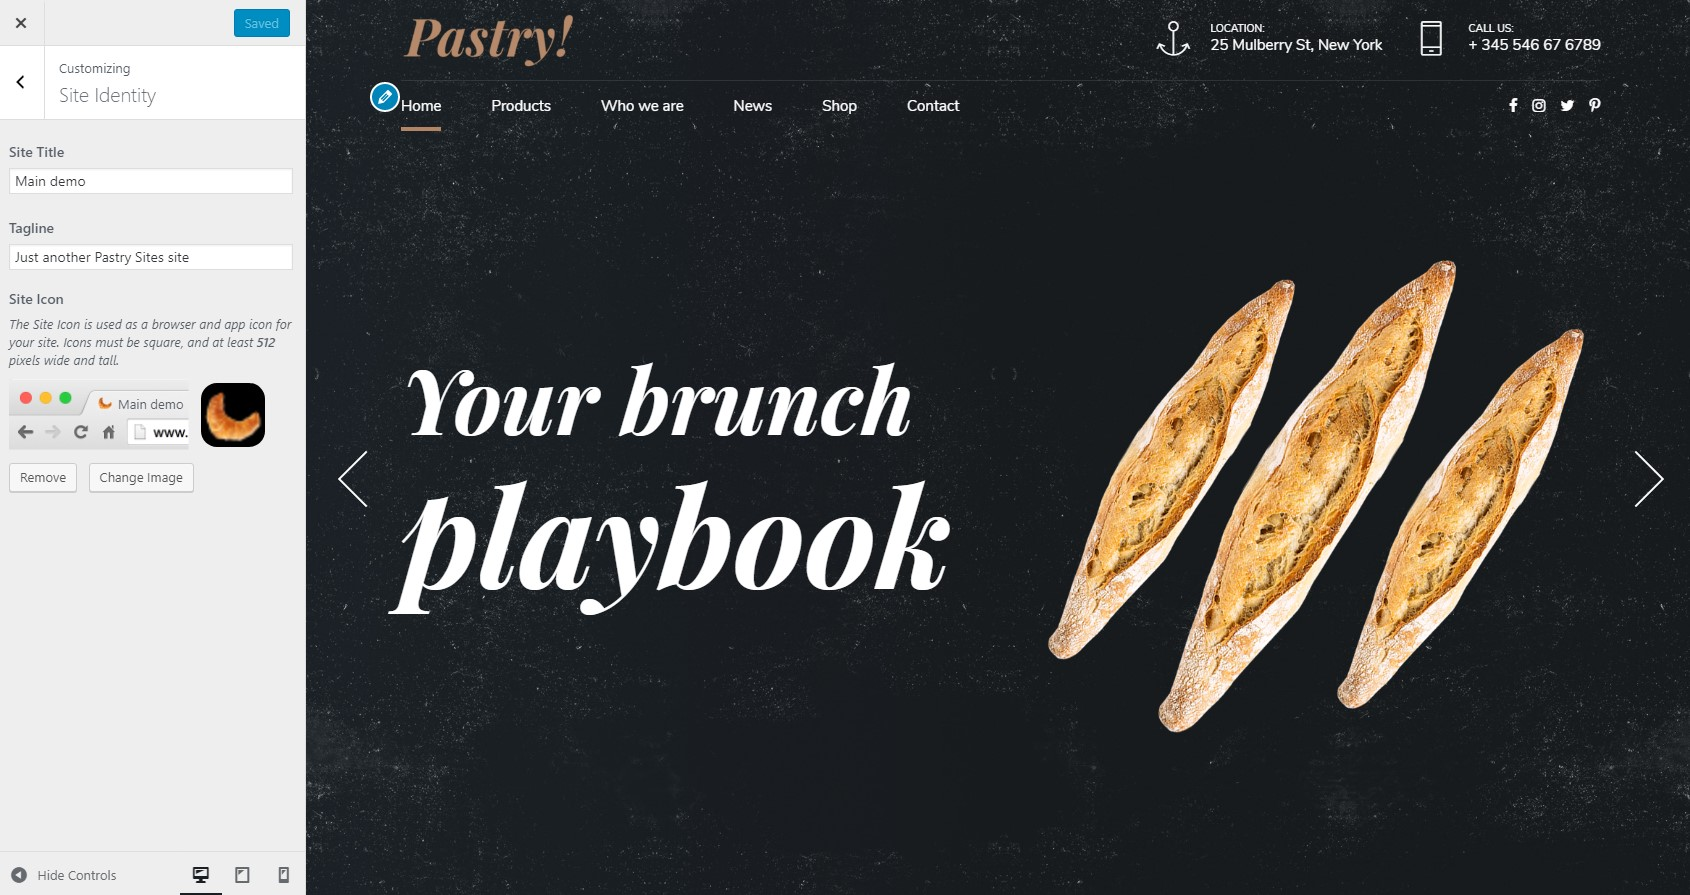 http://documentation.bold-themes.com/pastry-love/wp-content/uploads/sites/22/2017/08/site-identitly.jpg